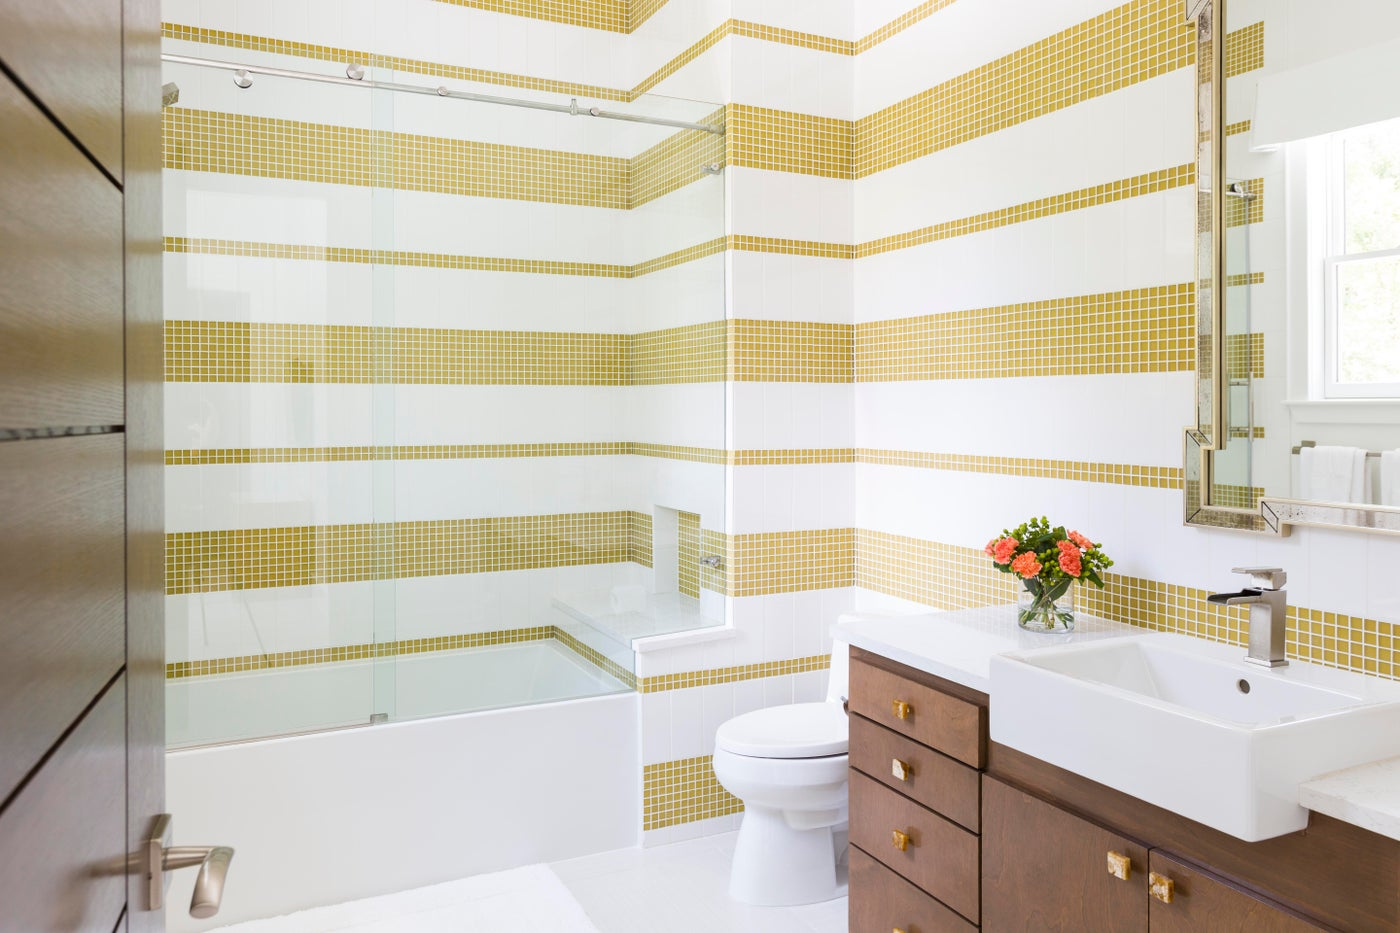 Horizontal stripes of gold and white tile make a bold statement in this bathroom